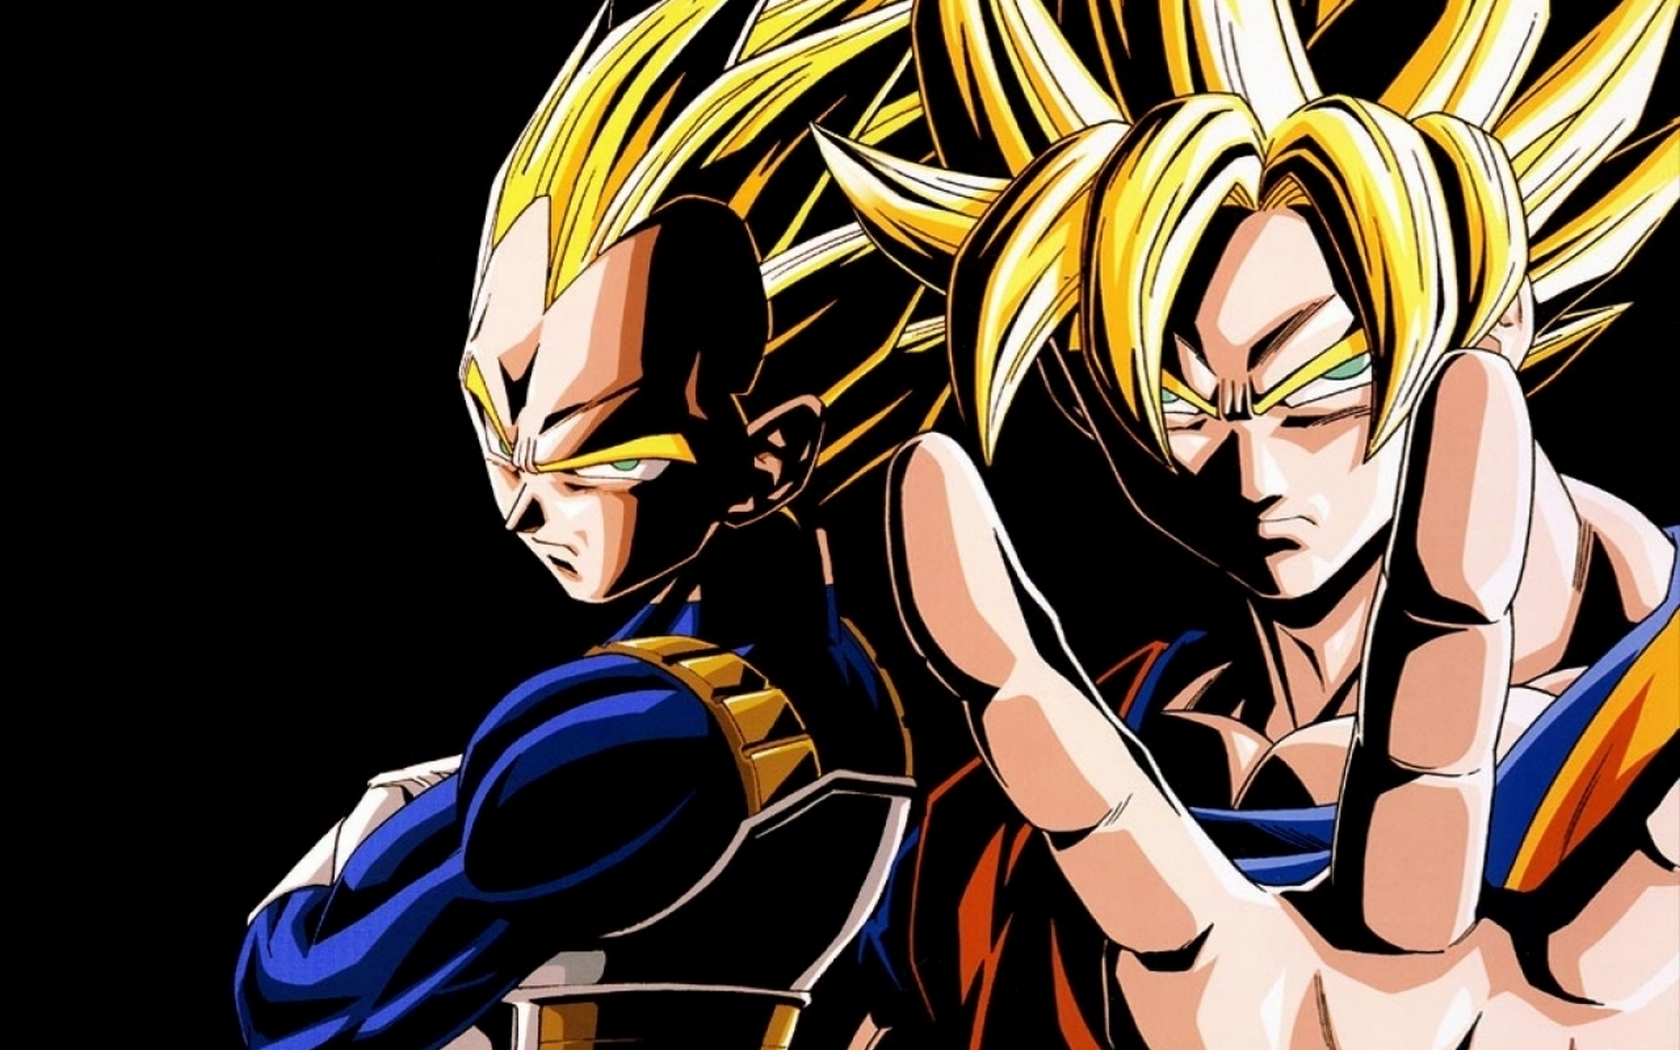 Dragon Ball Z Wallpaper 1680x1050